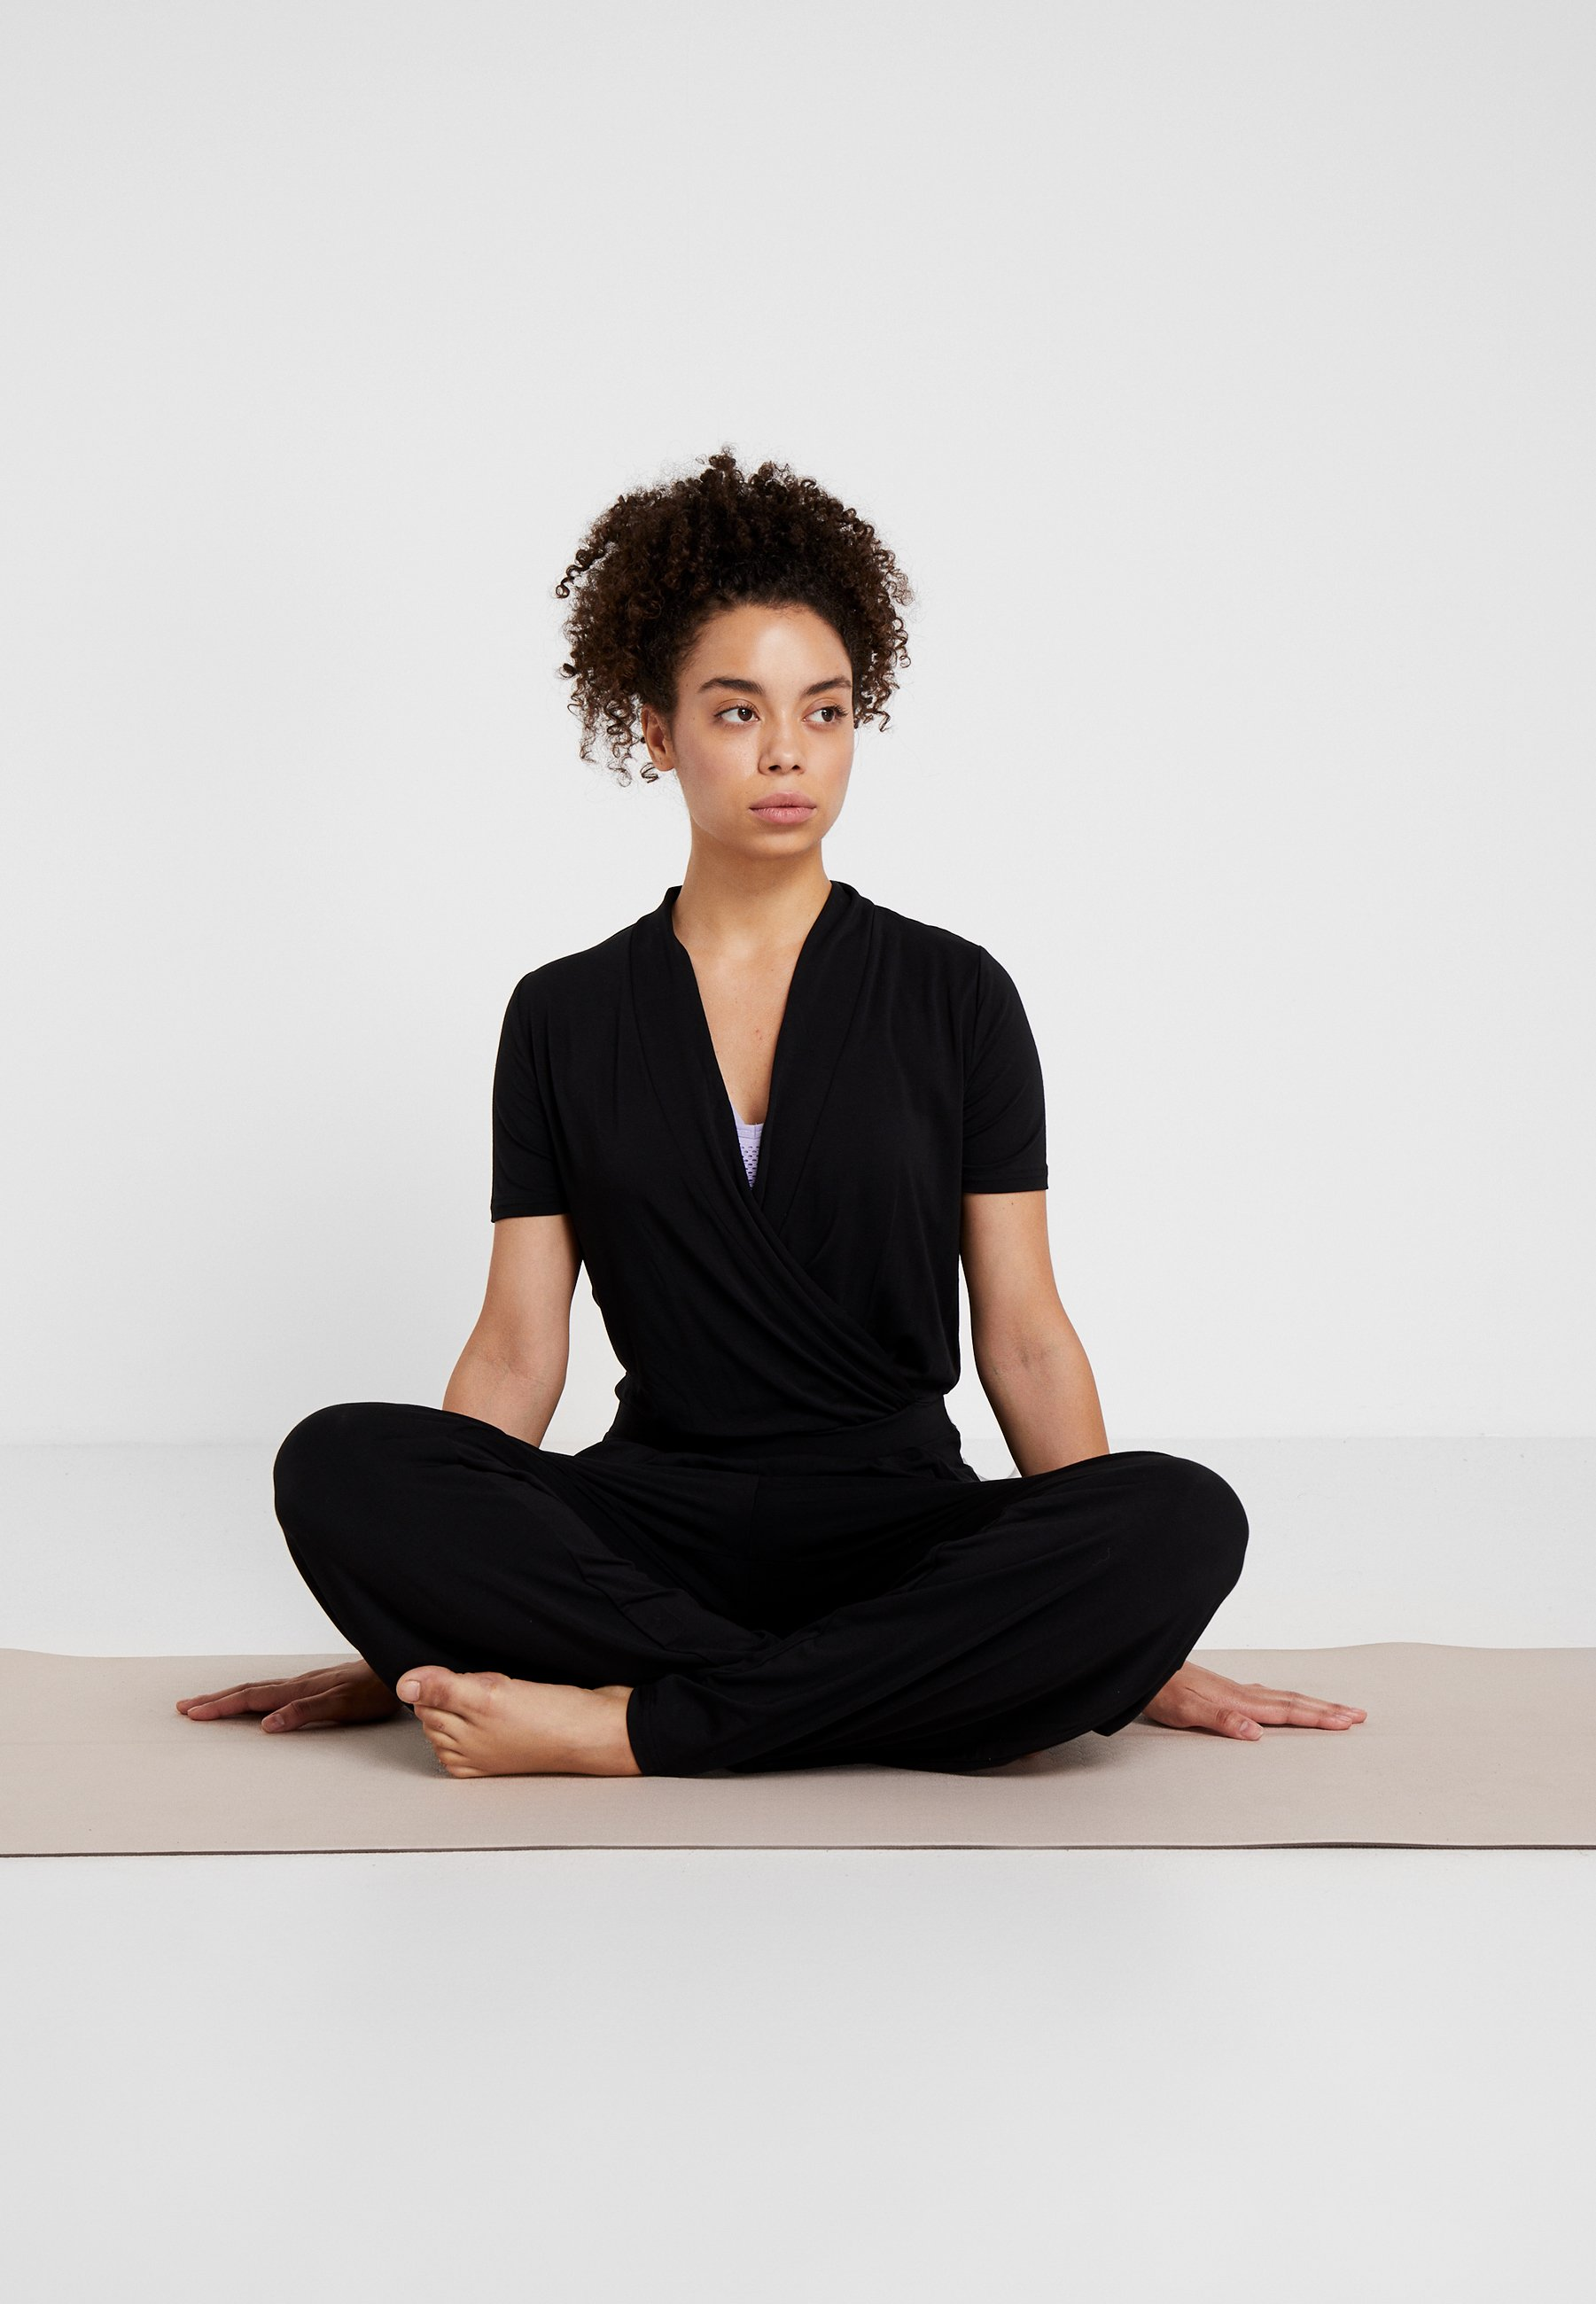 Perfect New And Fashion Women's Clothing Curare Yogawear JUMPSUIT Gym suit black sPvD7yNbU a0YKPemEt